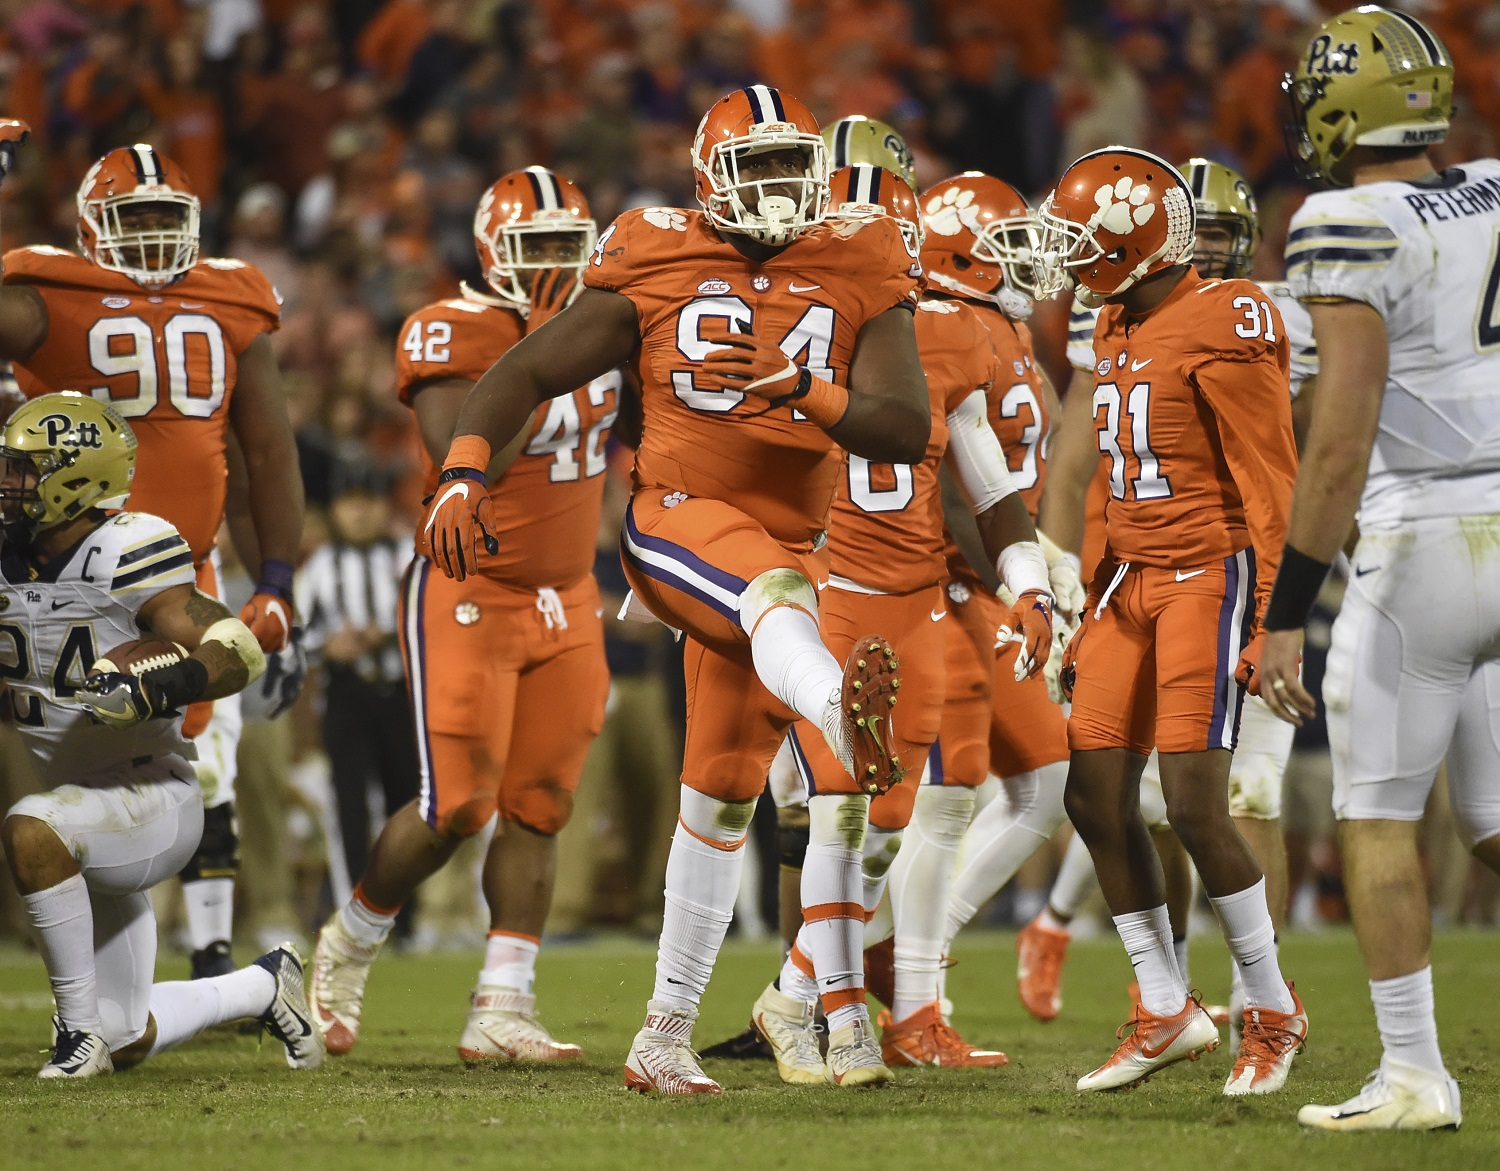 Clemson defensive tackle Carlos Watkins (94) reacts after a play against Pittsburgh during the second half of an NCAA college football game on Saturday, Nov. 12, 2016, in Clemson, S.C. (AP Photo/Rainier Ehrhardt)